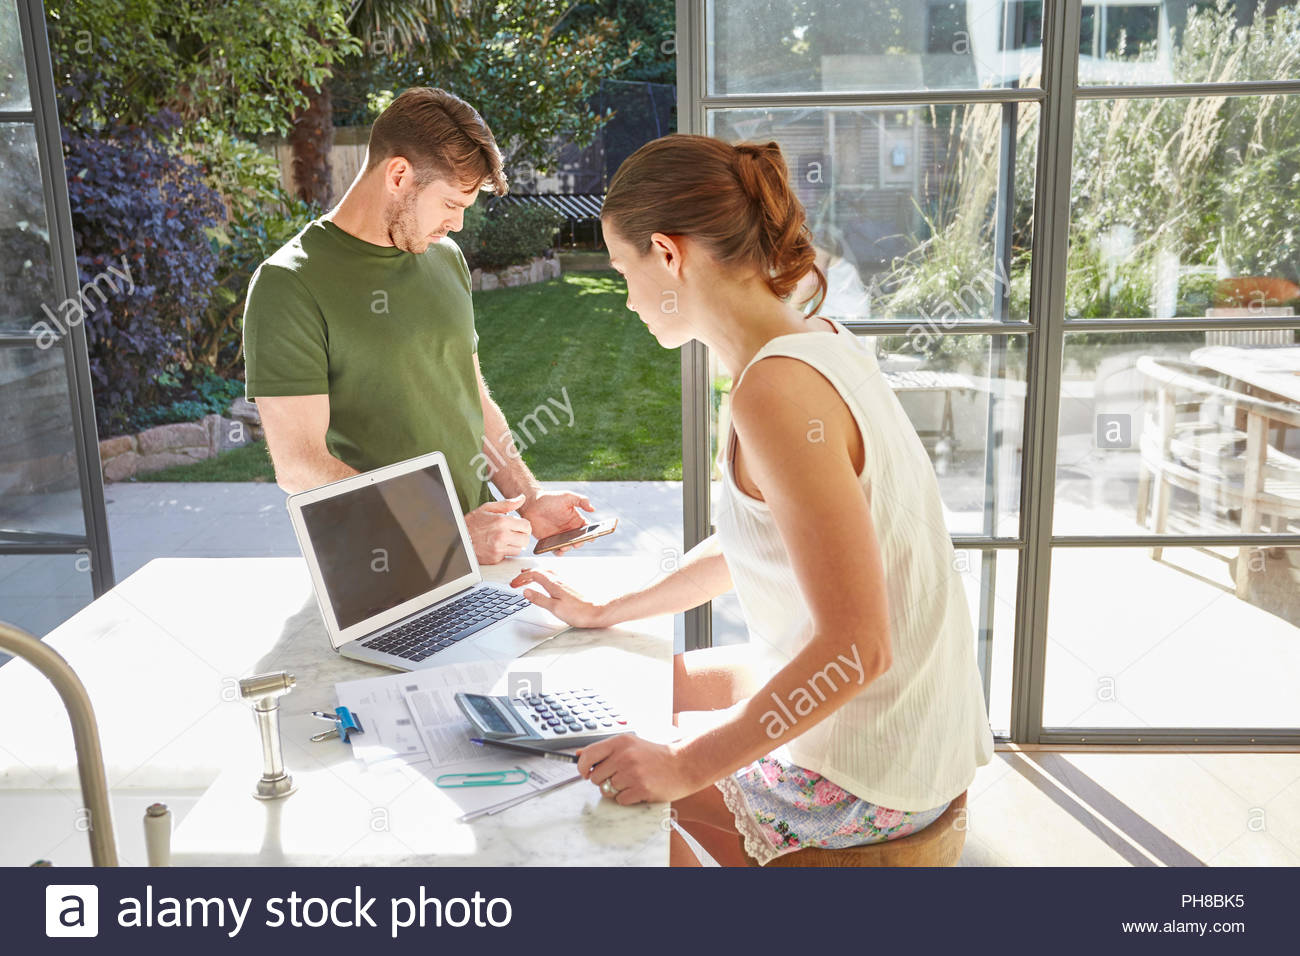 Mid adult married couple working at home. - Stock Image